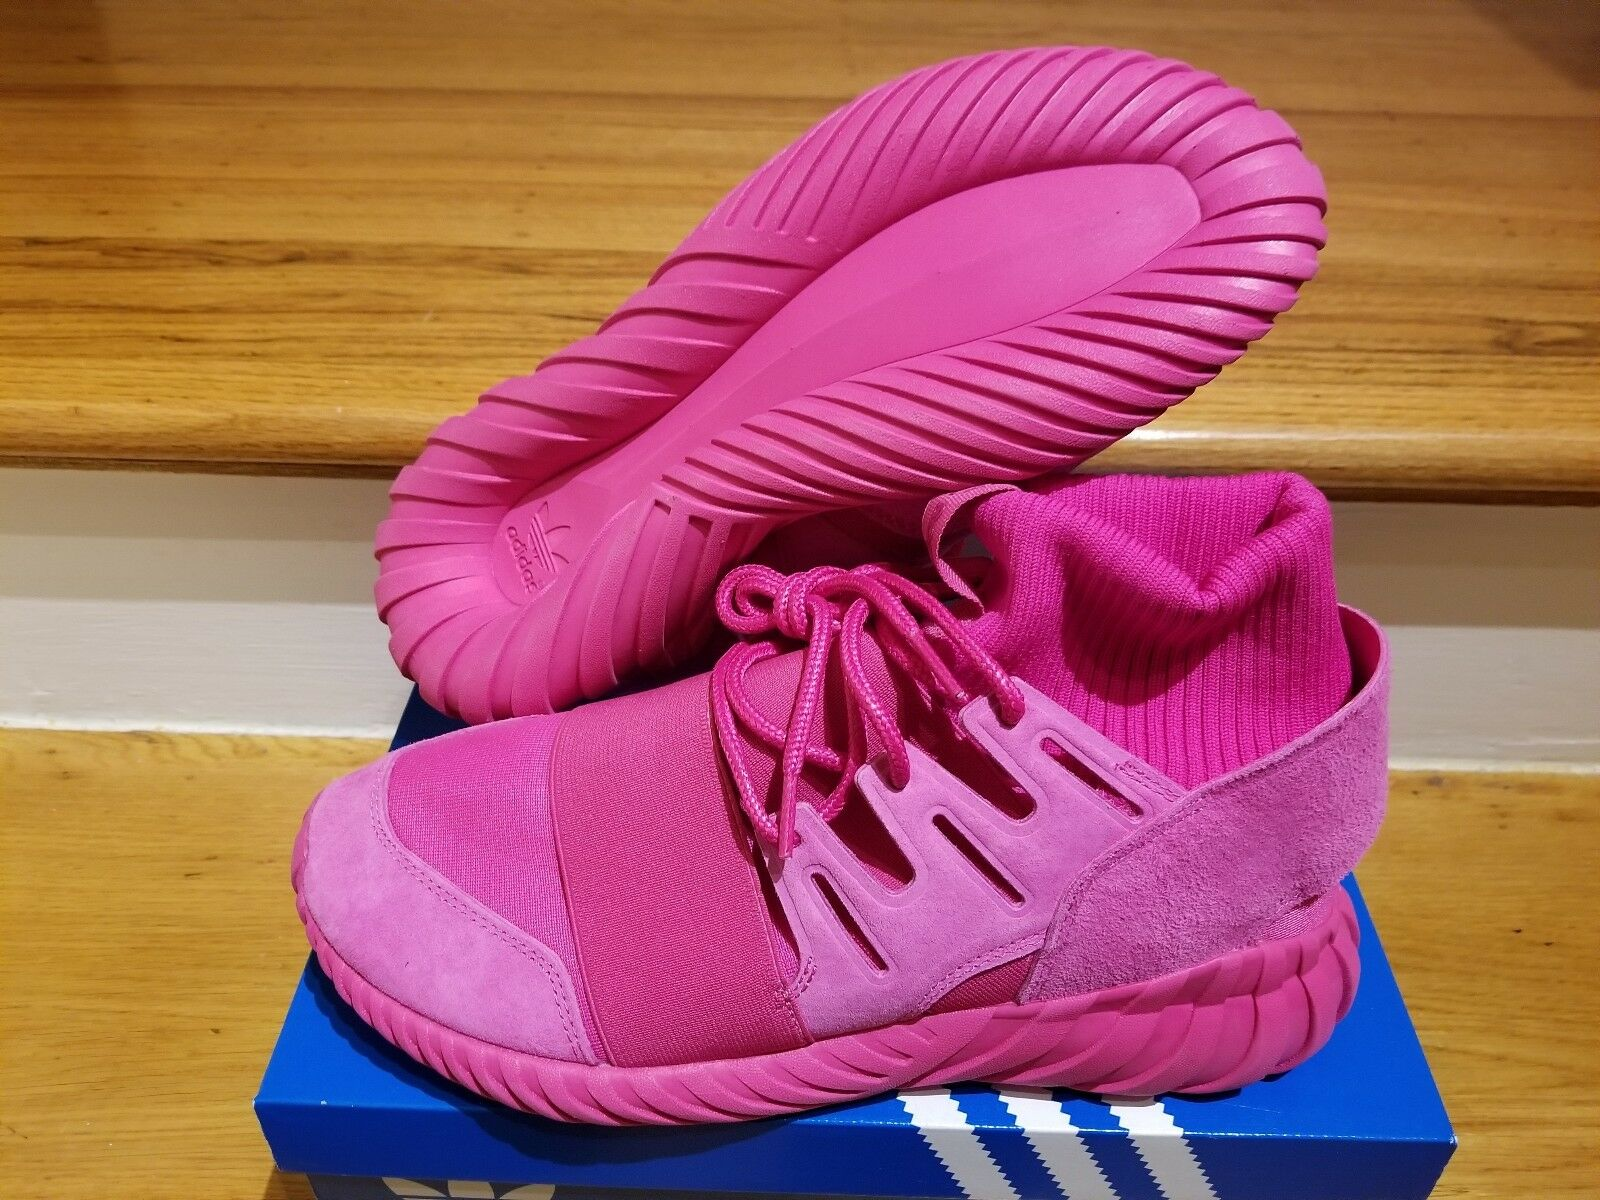 Size 9 Pink ADIDAS TUBULAR DOOM Triple Pink 9 Originals Trainers S74795 3517cb